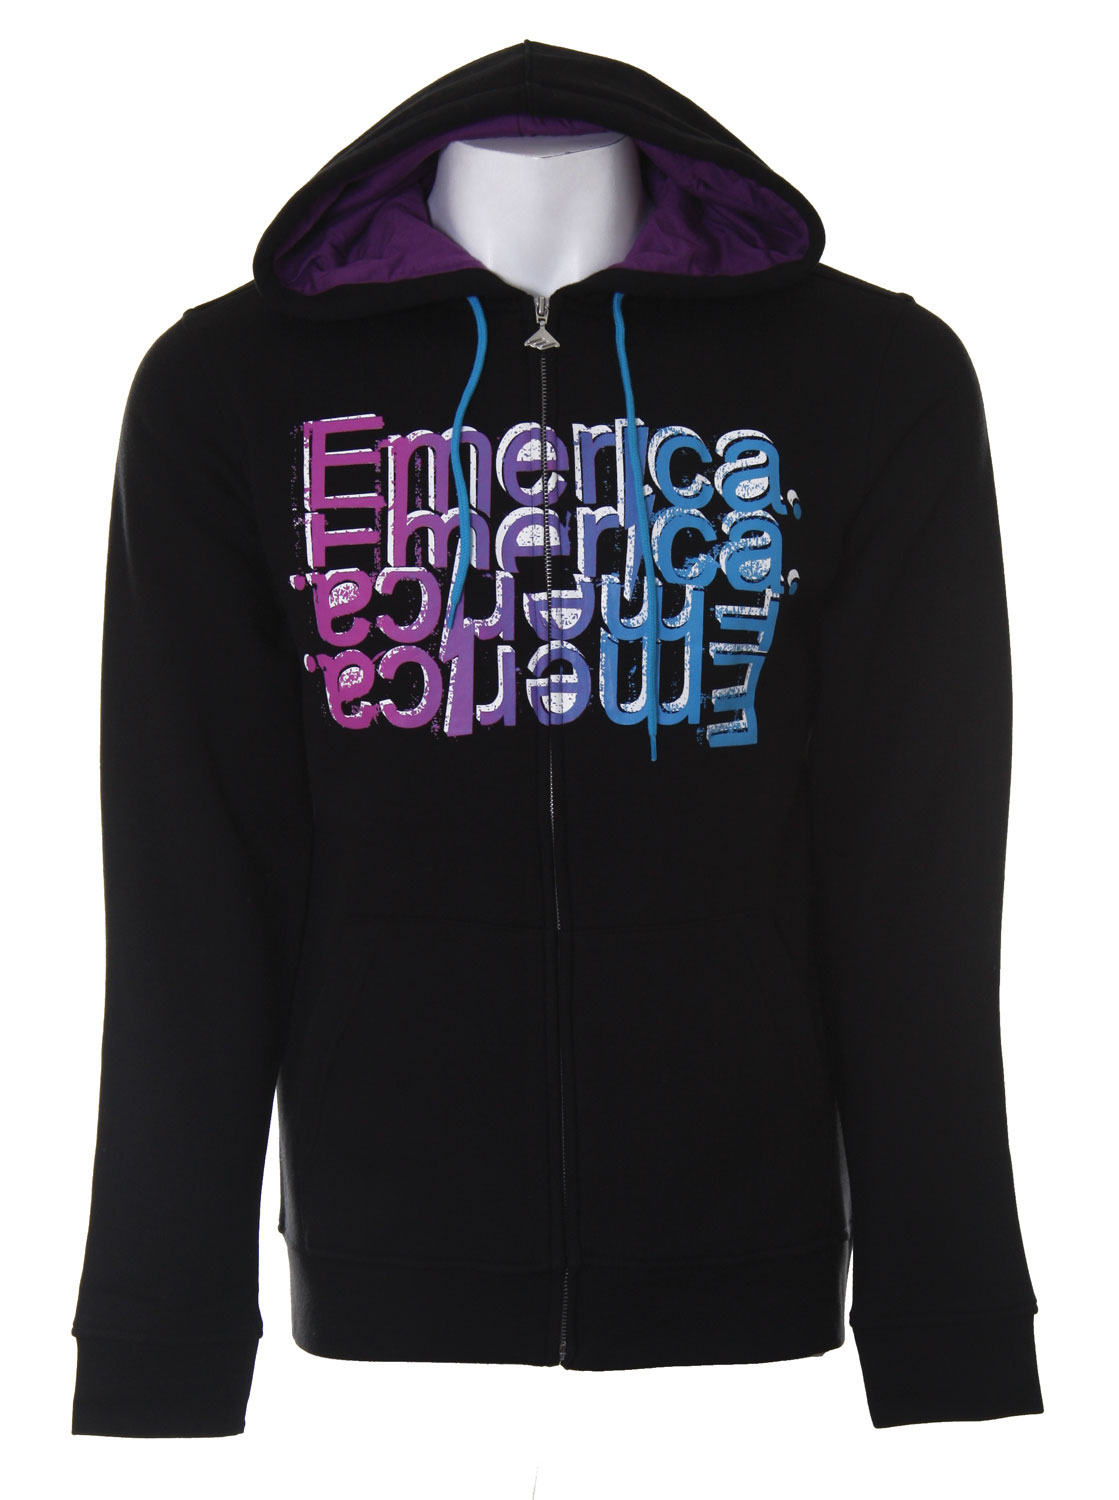 Not just good for weather protection, the Emerica Simon Zip hoodie is uniquely and definitely stylish! Made with a combination of cotton and polyester, the interior has a fleece feel that keeps you warm without lacking quality and comfort. In addition to its weather protection, this fleece features a unique contrast design that provides multiple colors on the interior and exterior as well as specialized embroidering. The Emerica Simon Zip hoodie is available in different sizes for guys of different heights and weights.Key Features of The Emerica Simon Zip Up Hoodie: 80% Cotton / 20 Poly 330 Gms Fleece Zip Hooded Sweat Shirt Screen Print Logo on Chest Contrast Jersey Lined Hood Contrast Embroidered Eyelets and Drawcords - $30.95